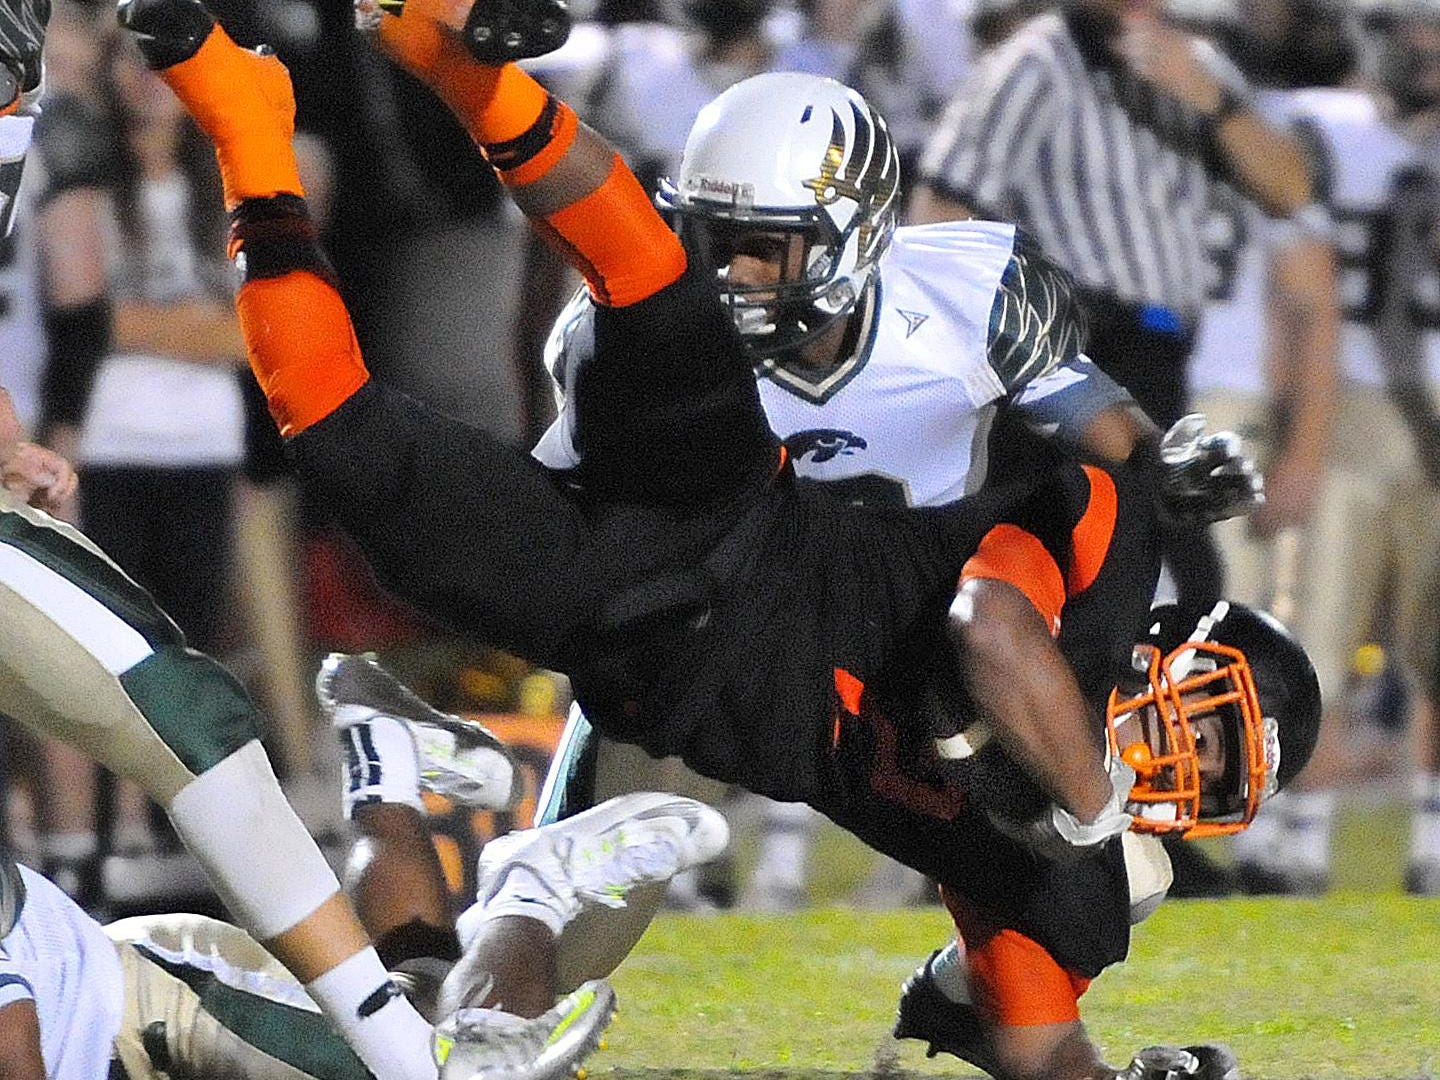 Cocoa High's Timmy Pratt is up-ended by a host of Viera High defenders during Friday night's game at Tiger Stadium.